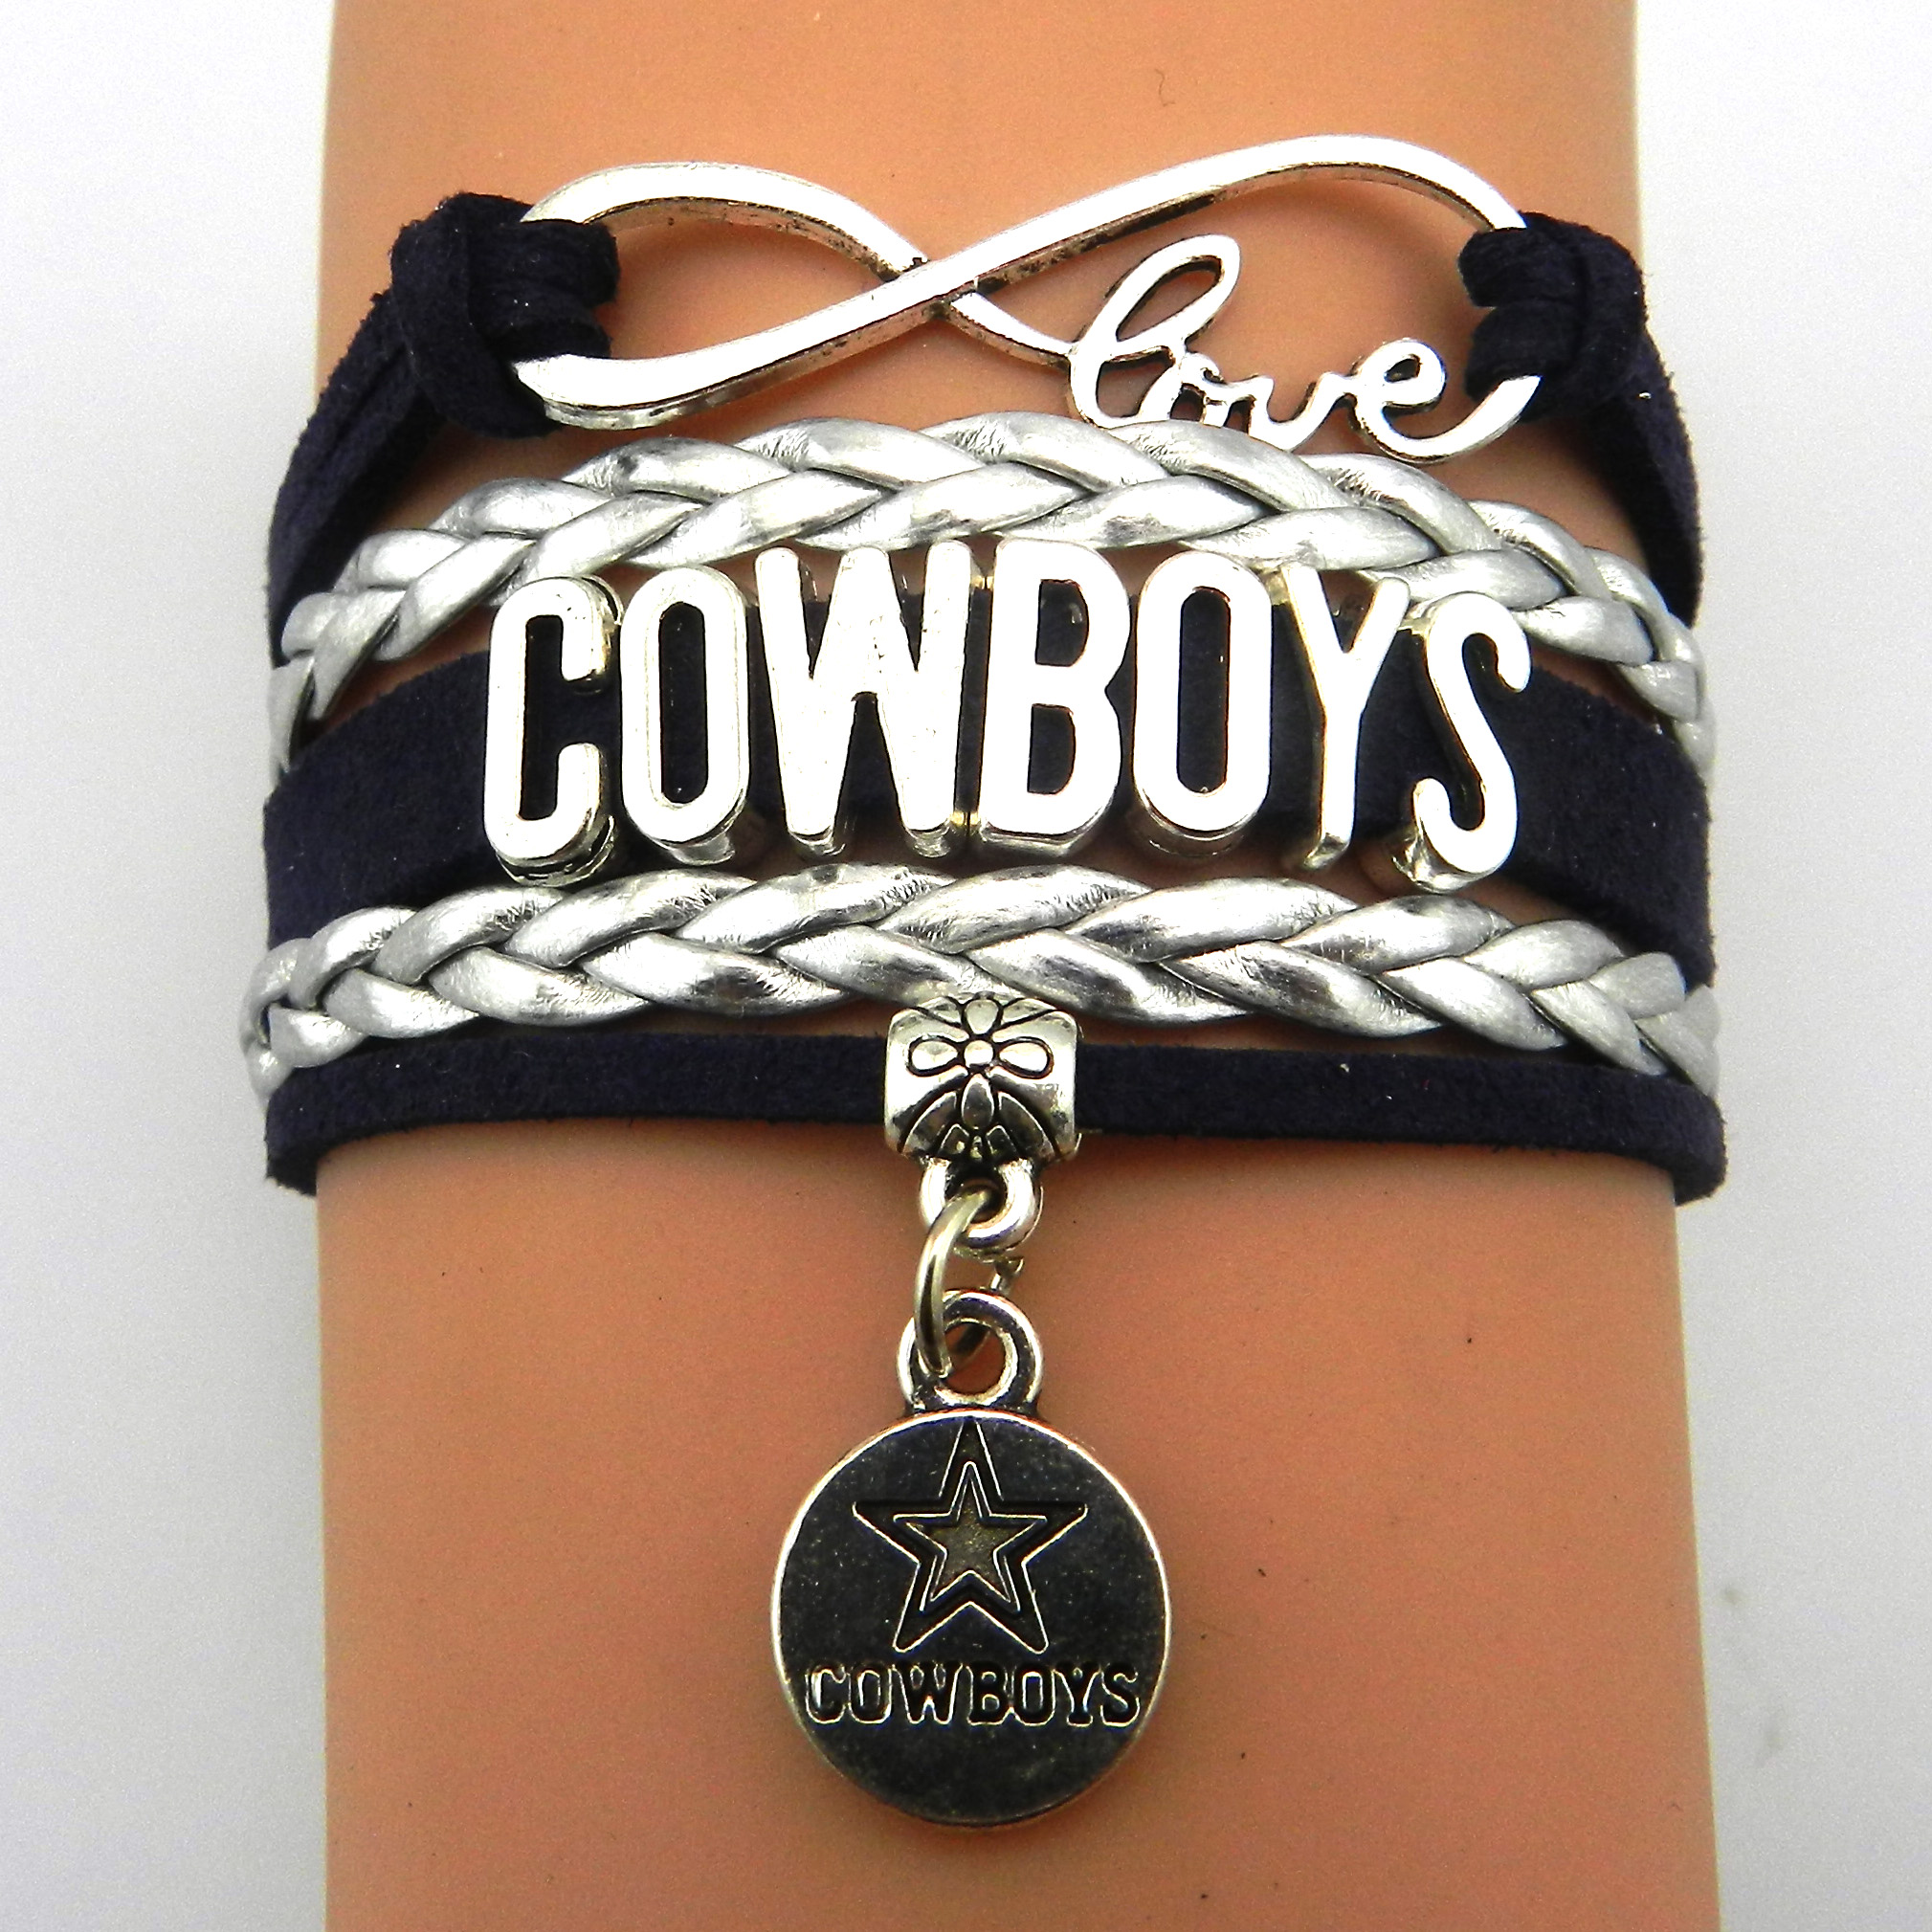 Aliexpress 10 Pieces Lot Infinity Love Dallas Cowboys Football Team Bracelet Navy Silver Custom Any Bracelets Offer Drop Shipping From